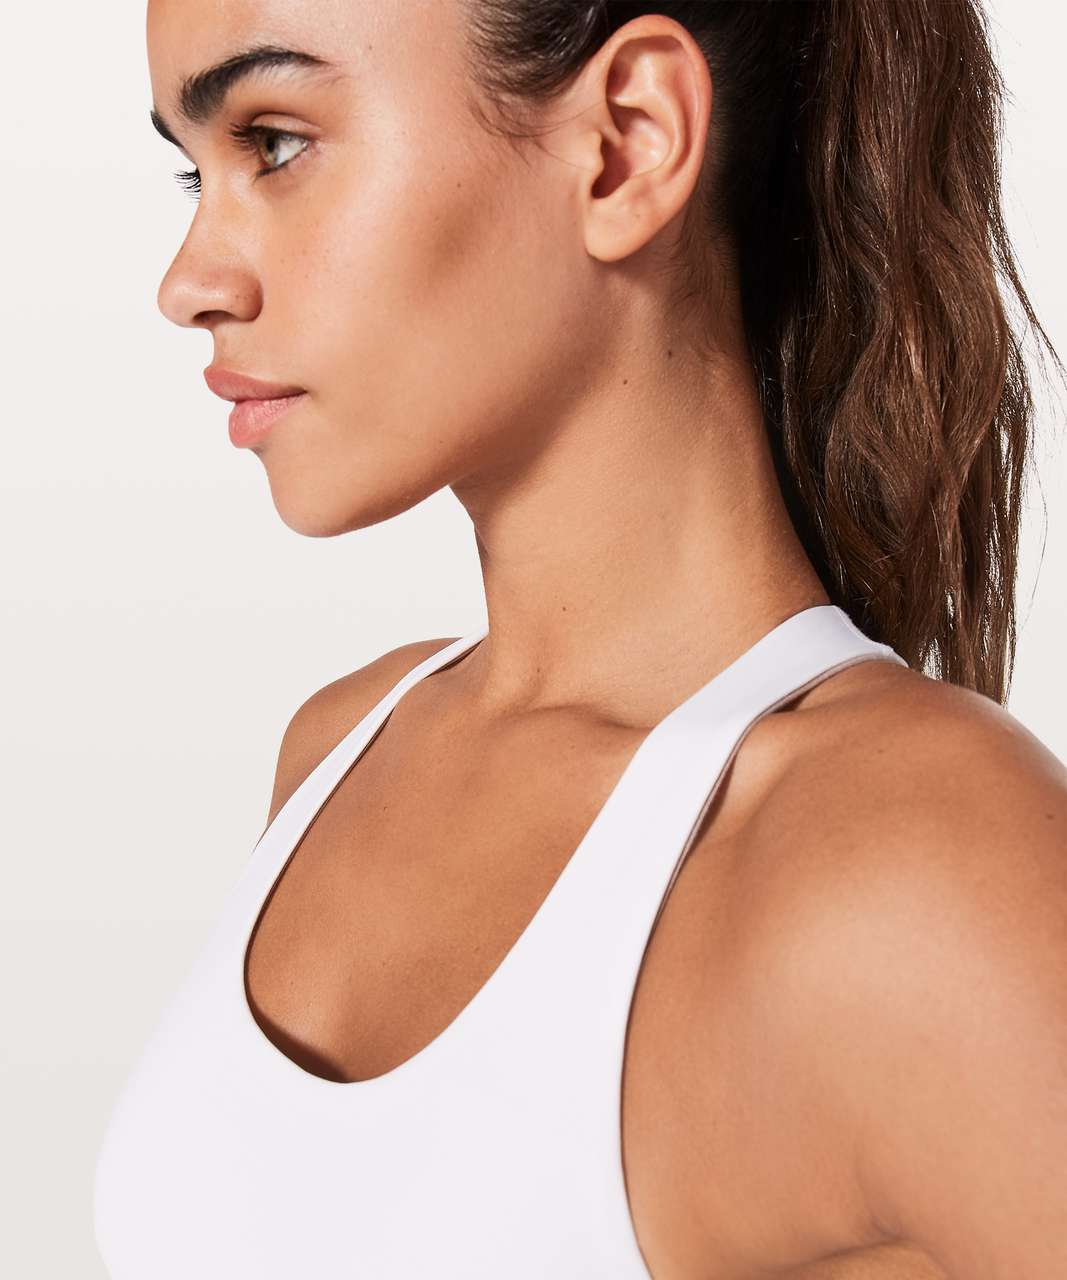 Lululemon Time To Sweat Bra - White